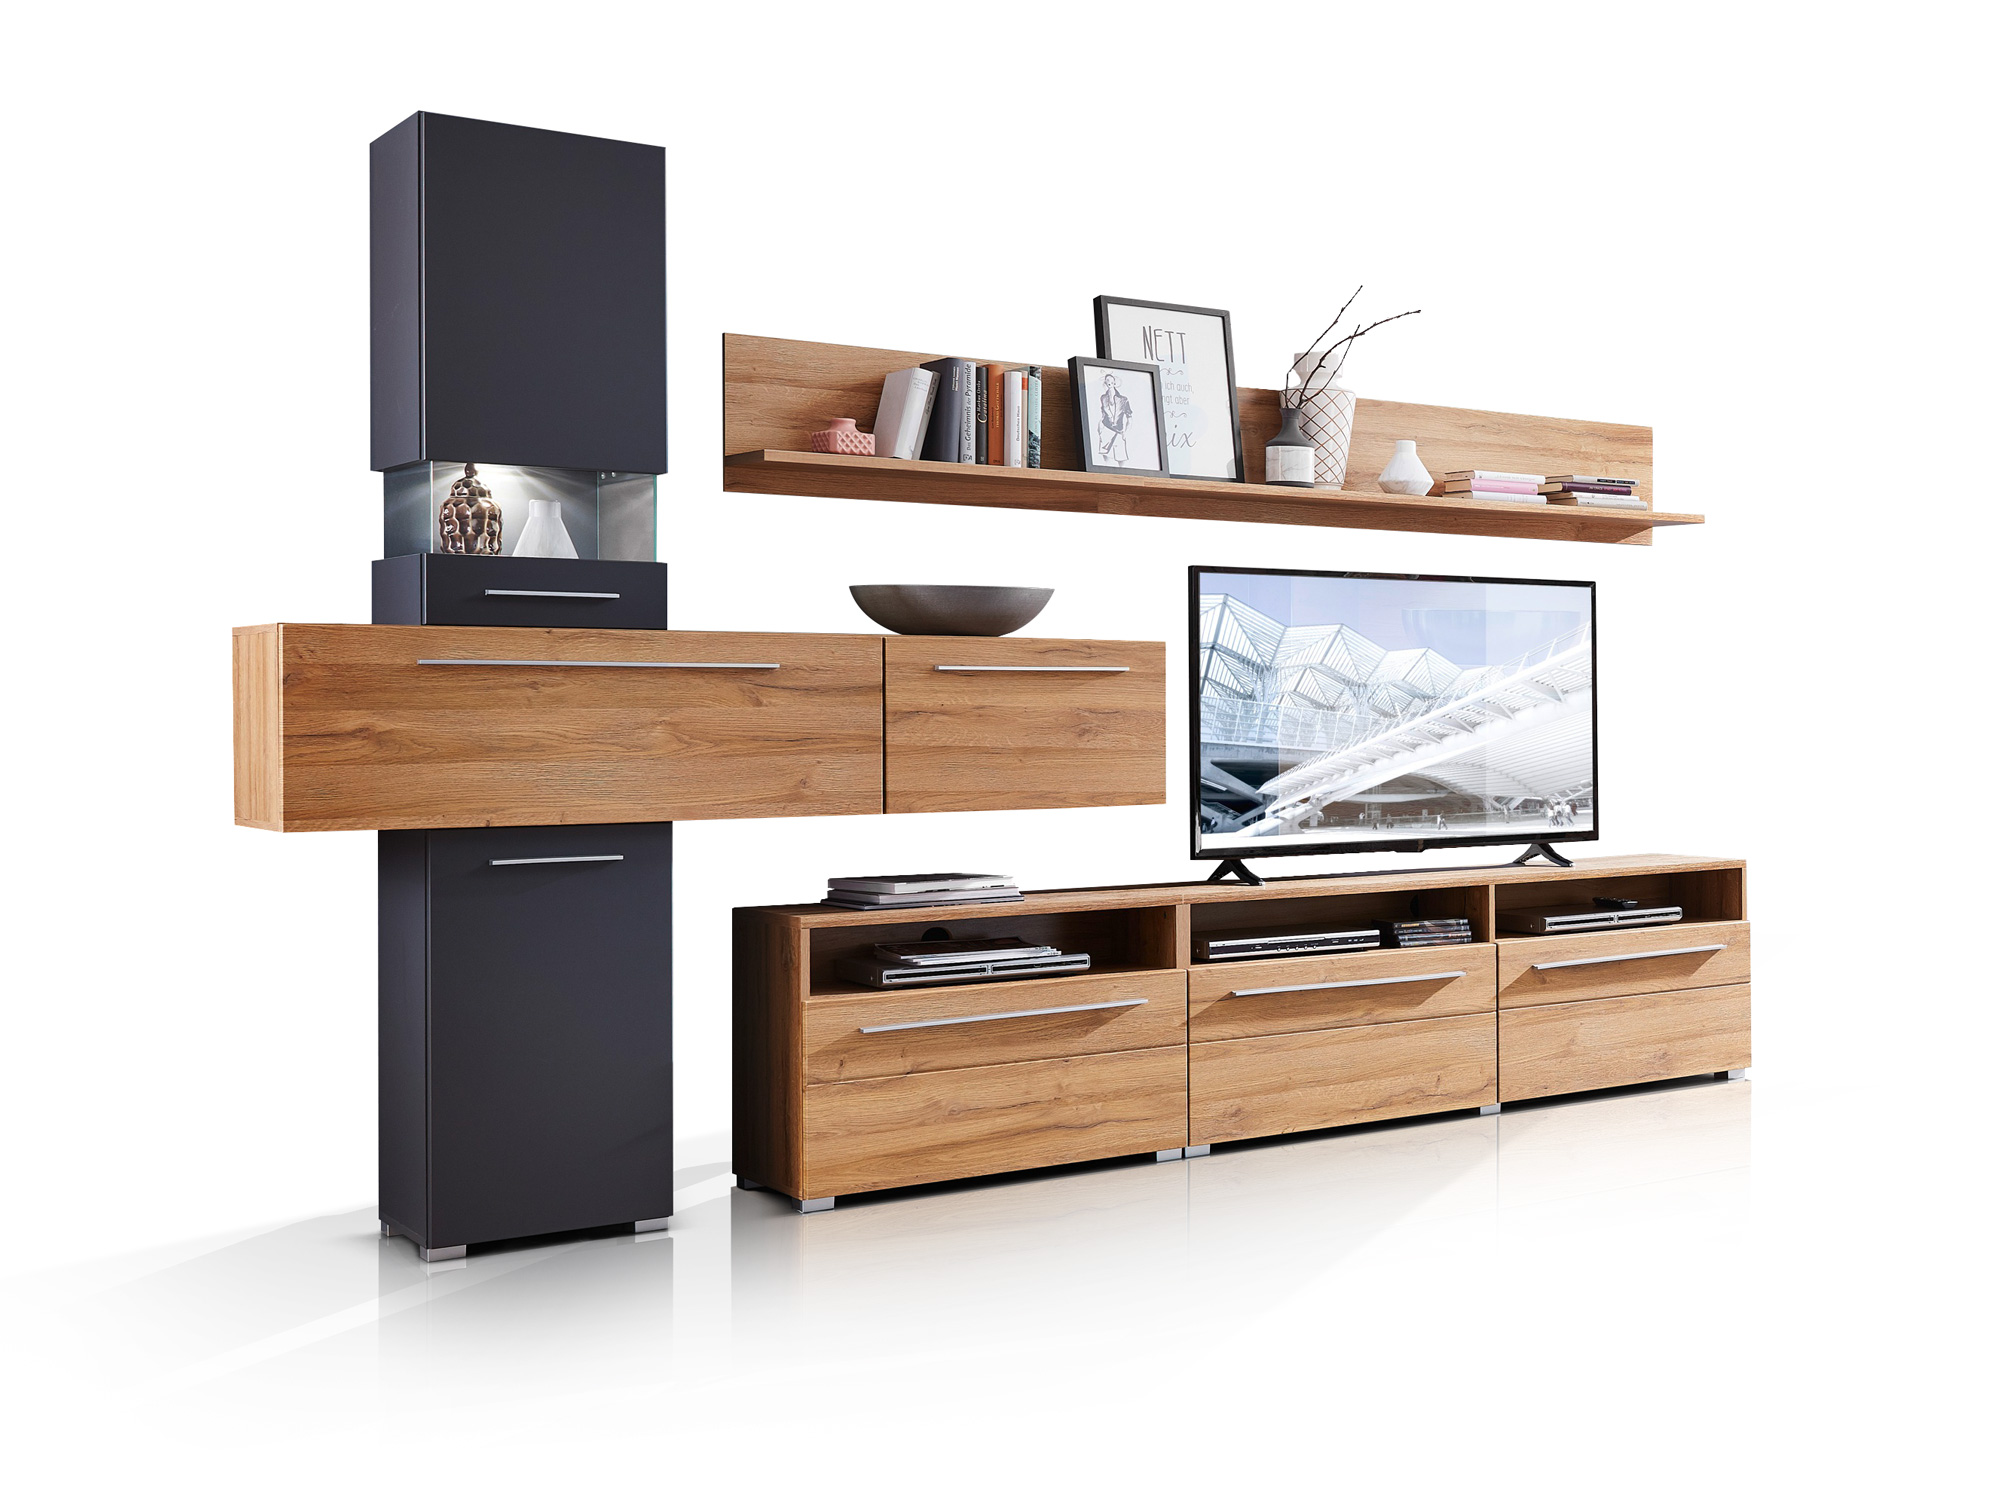 balia wohnwand inklusive led beleuchtung eiche graphit. Black Bedroom Furniture Sets. Home Design Ideas